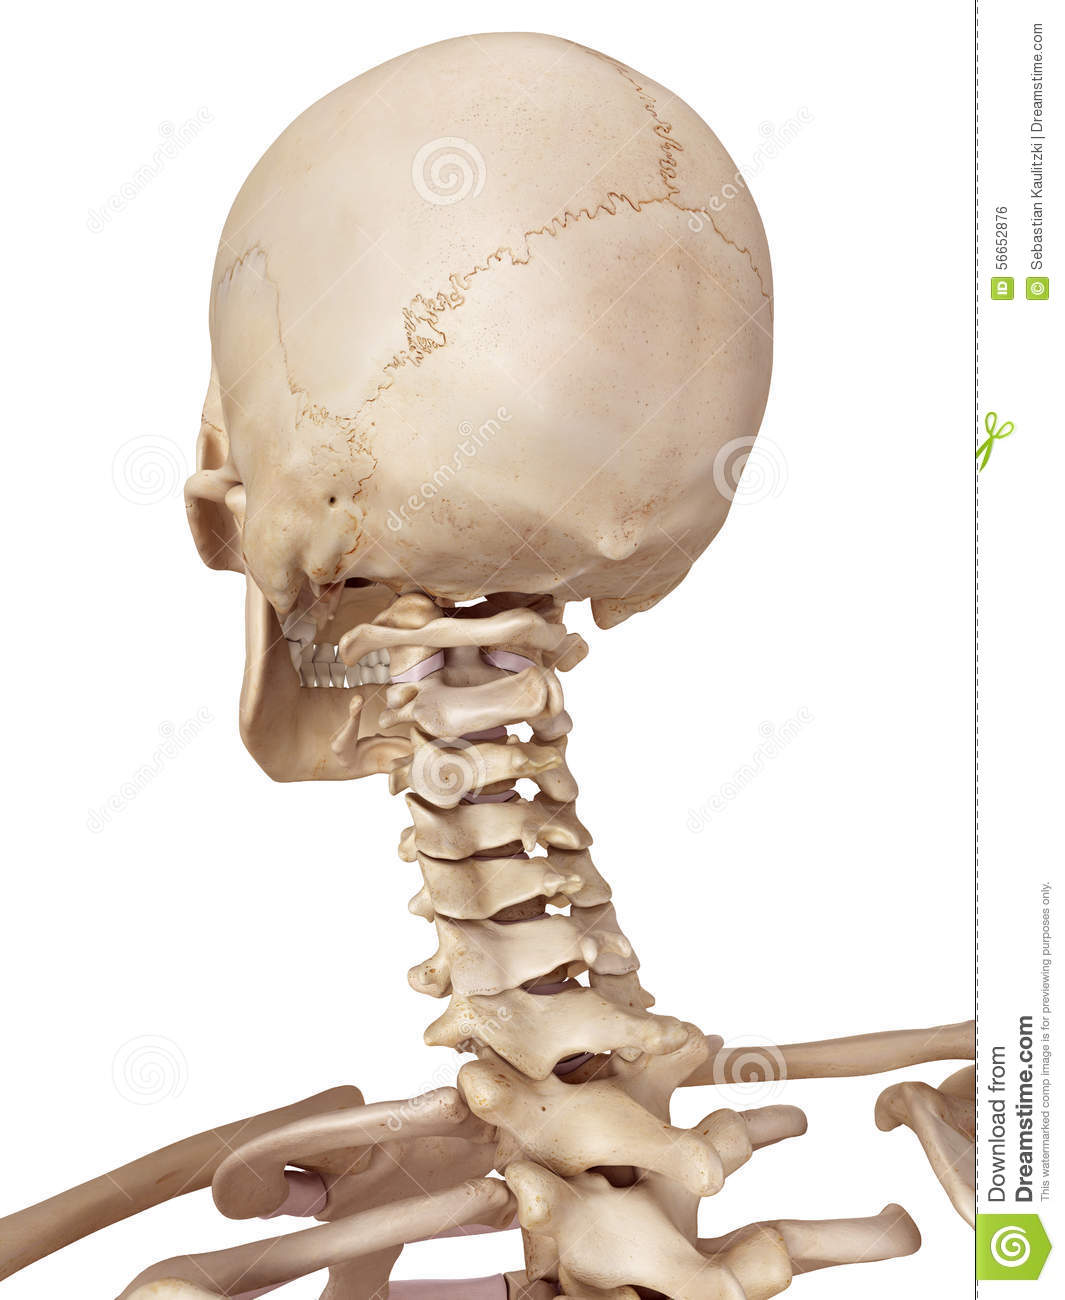 The Human Skull And Neck Stock Illustration Illustration Of Graphic